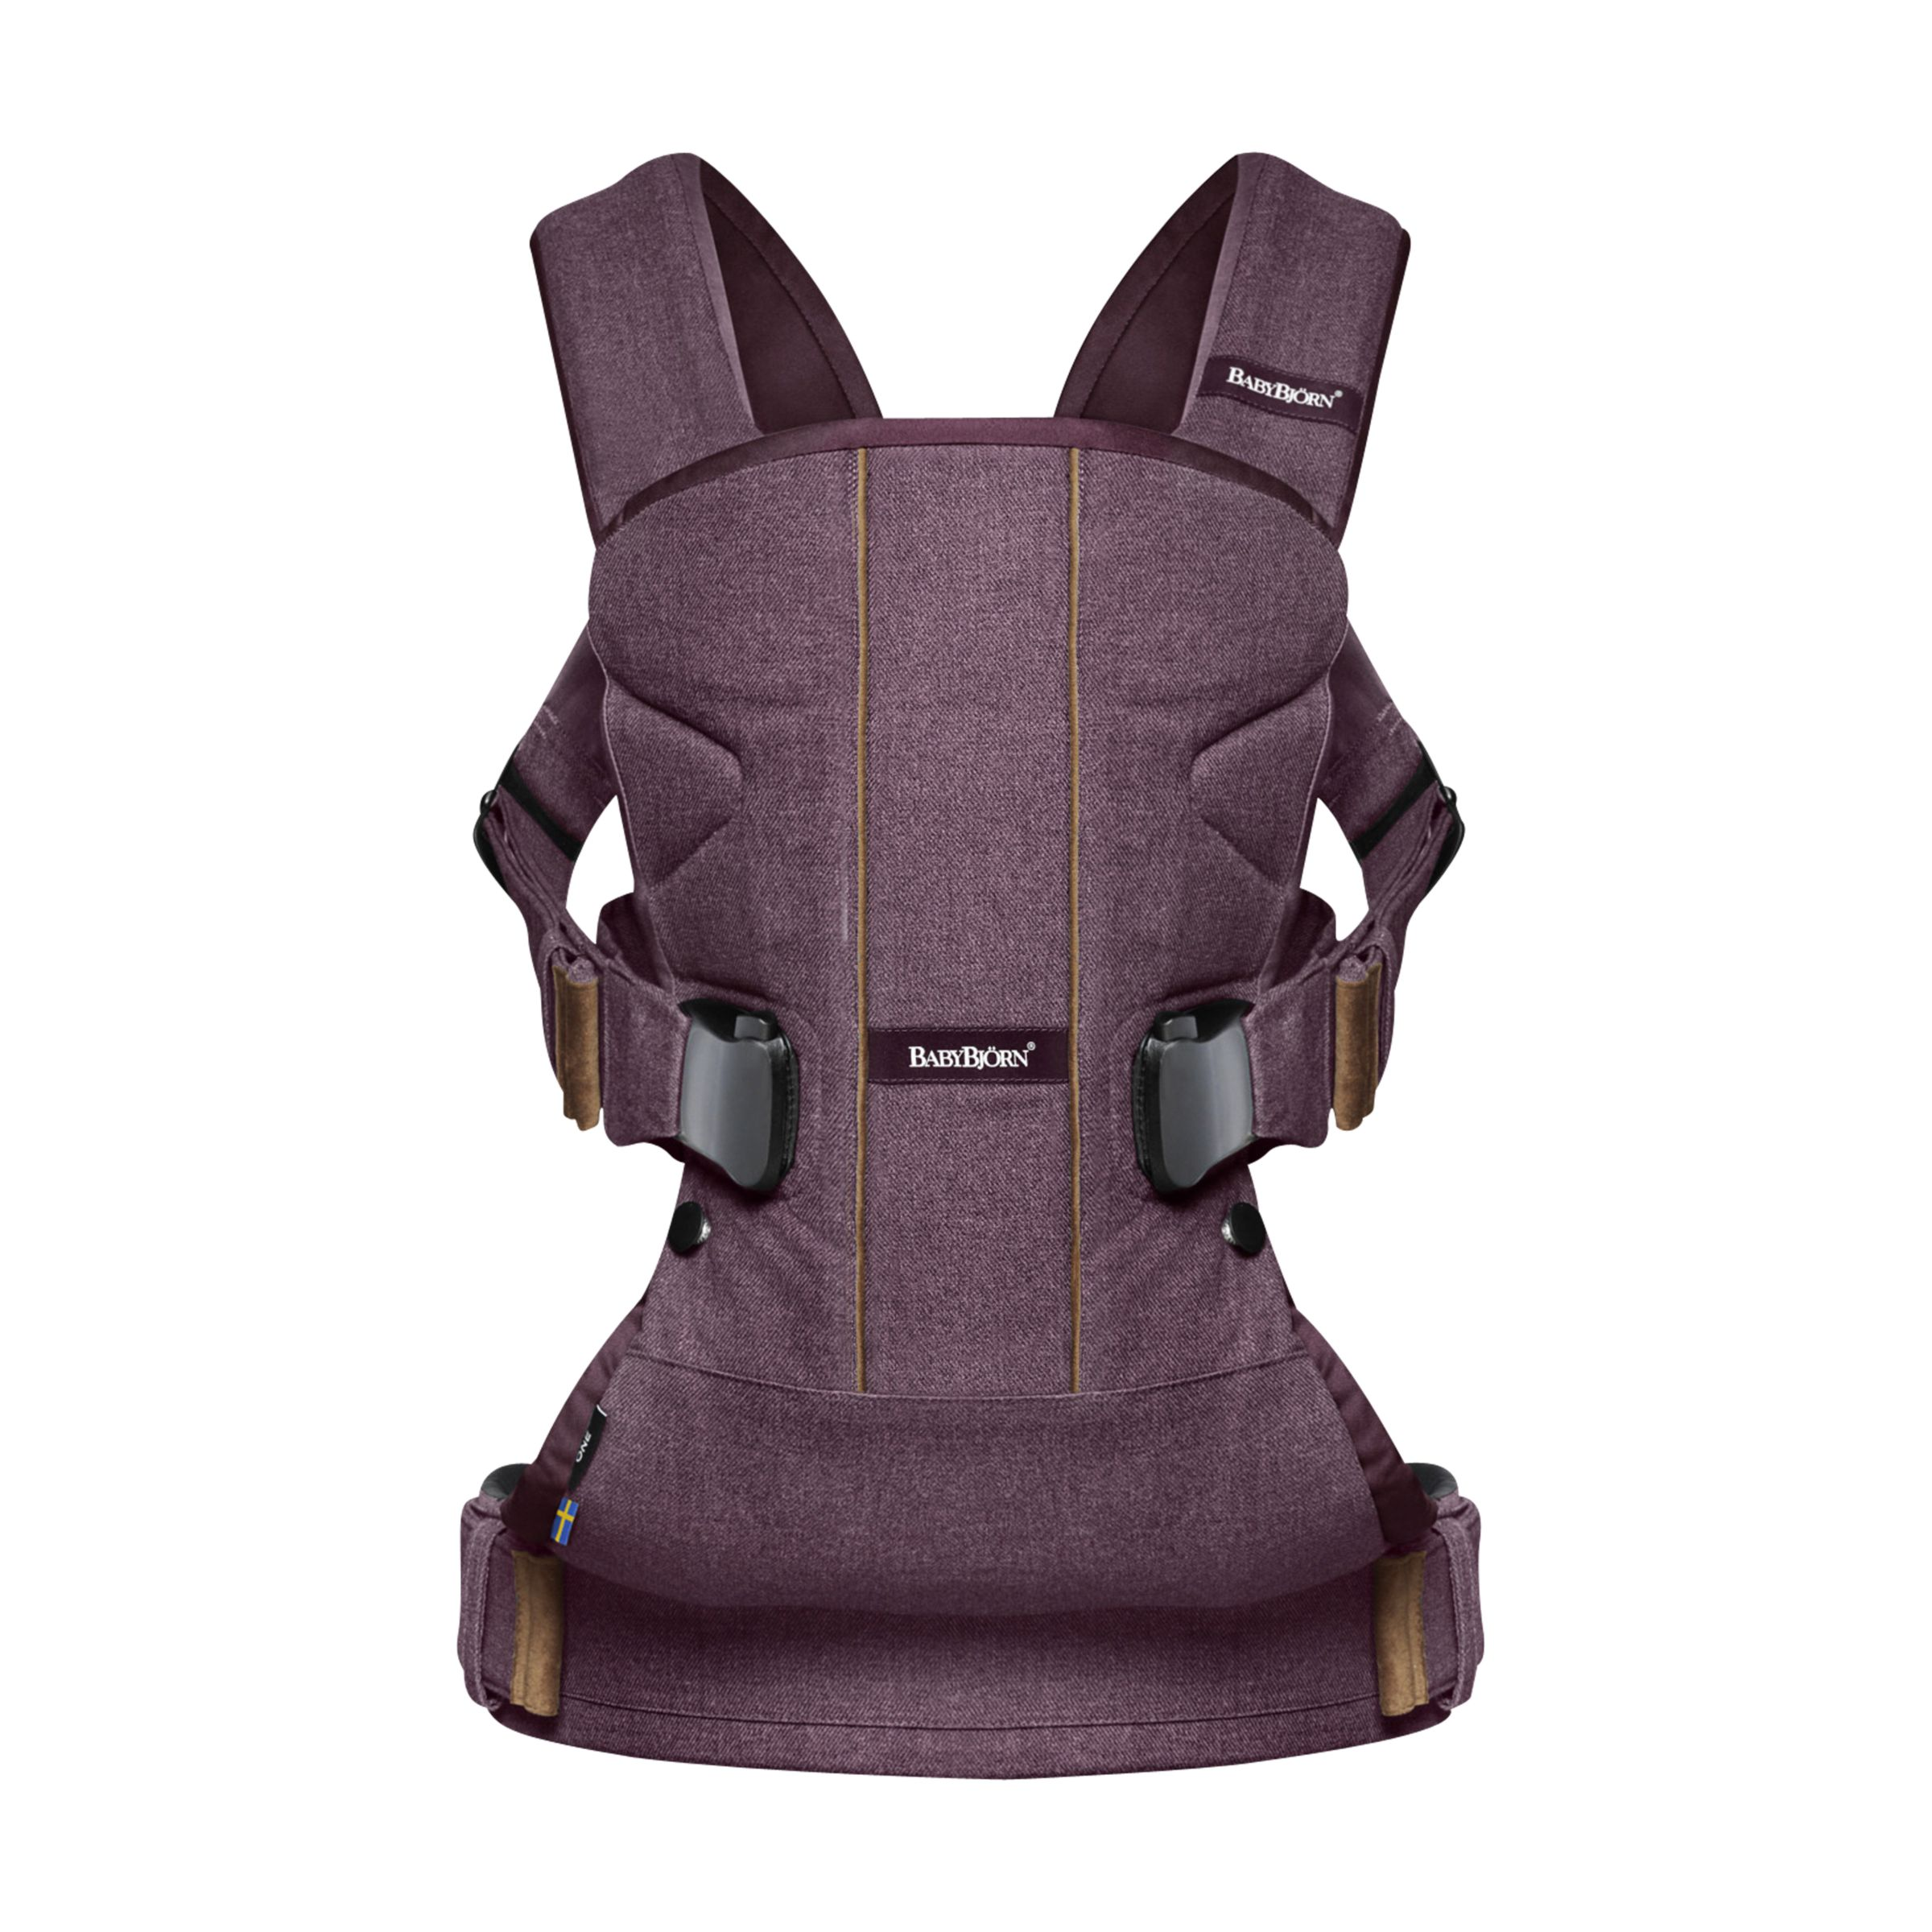 BabyBjorn BabyBjörn Woods Baby Carrier One